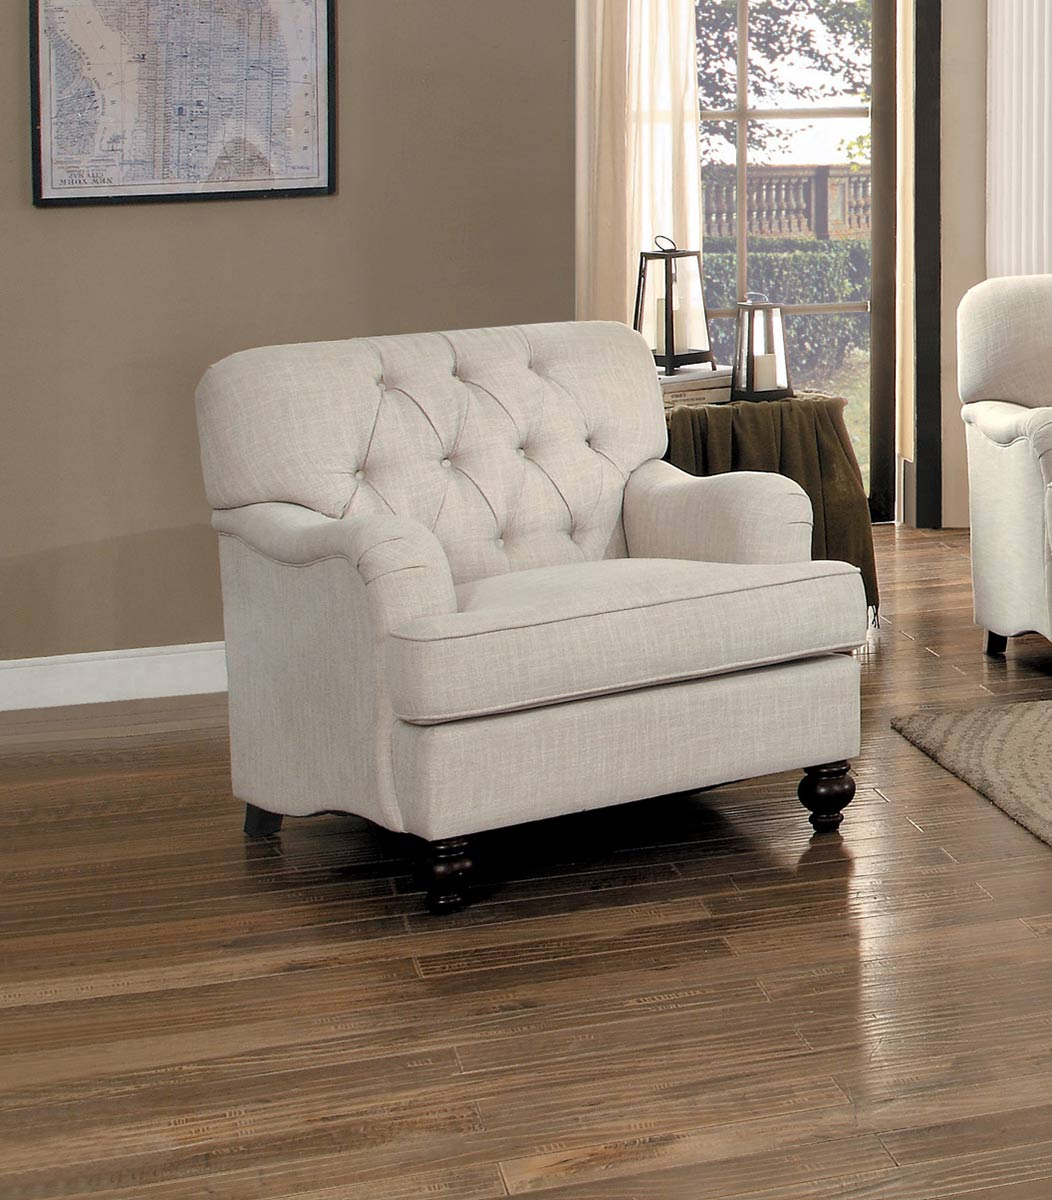 Homelegance Clemencia Chair - Natural Tone Fabric